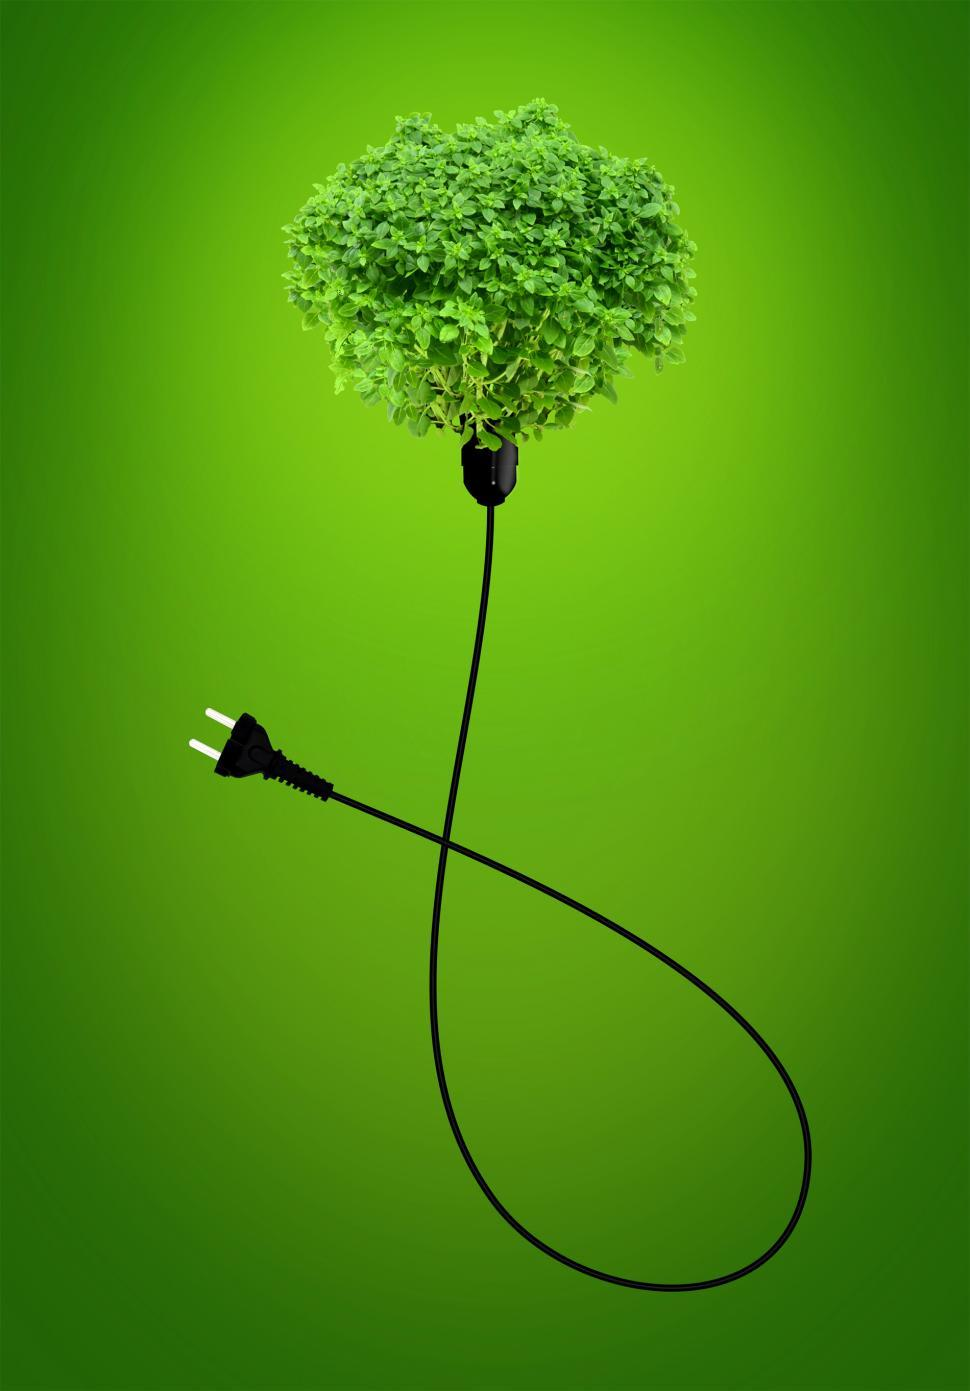 Download Free Stock HD Photo of Clean Energy Concept - A Green Power Plug Online